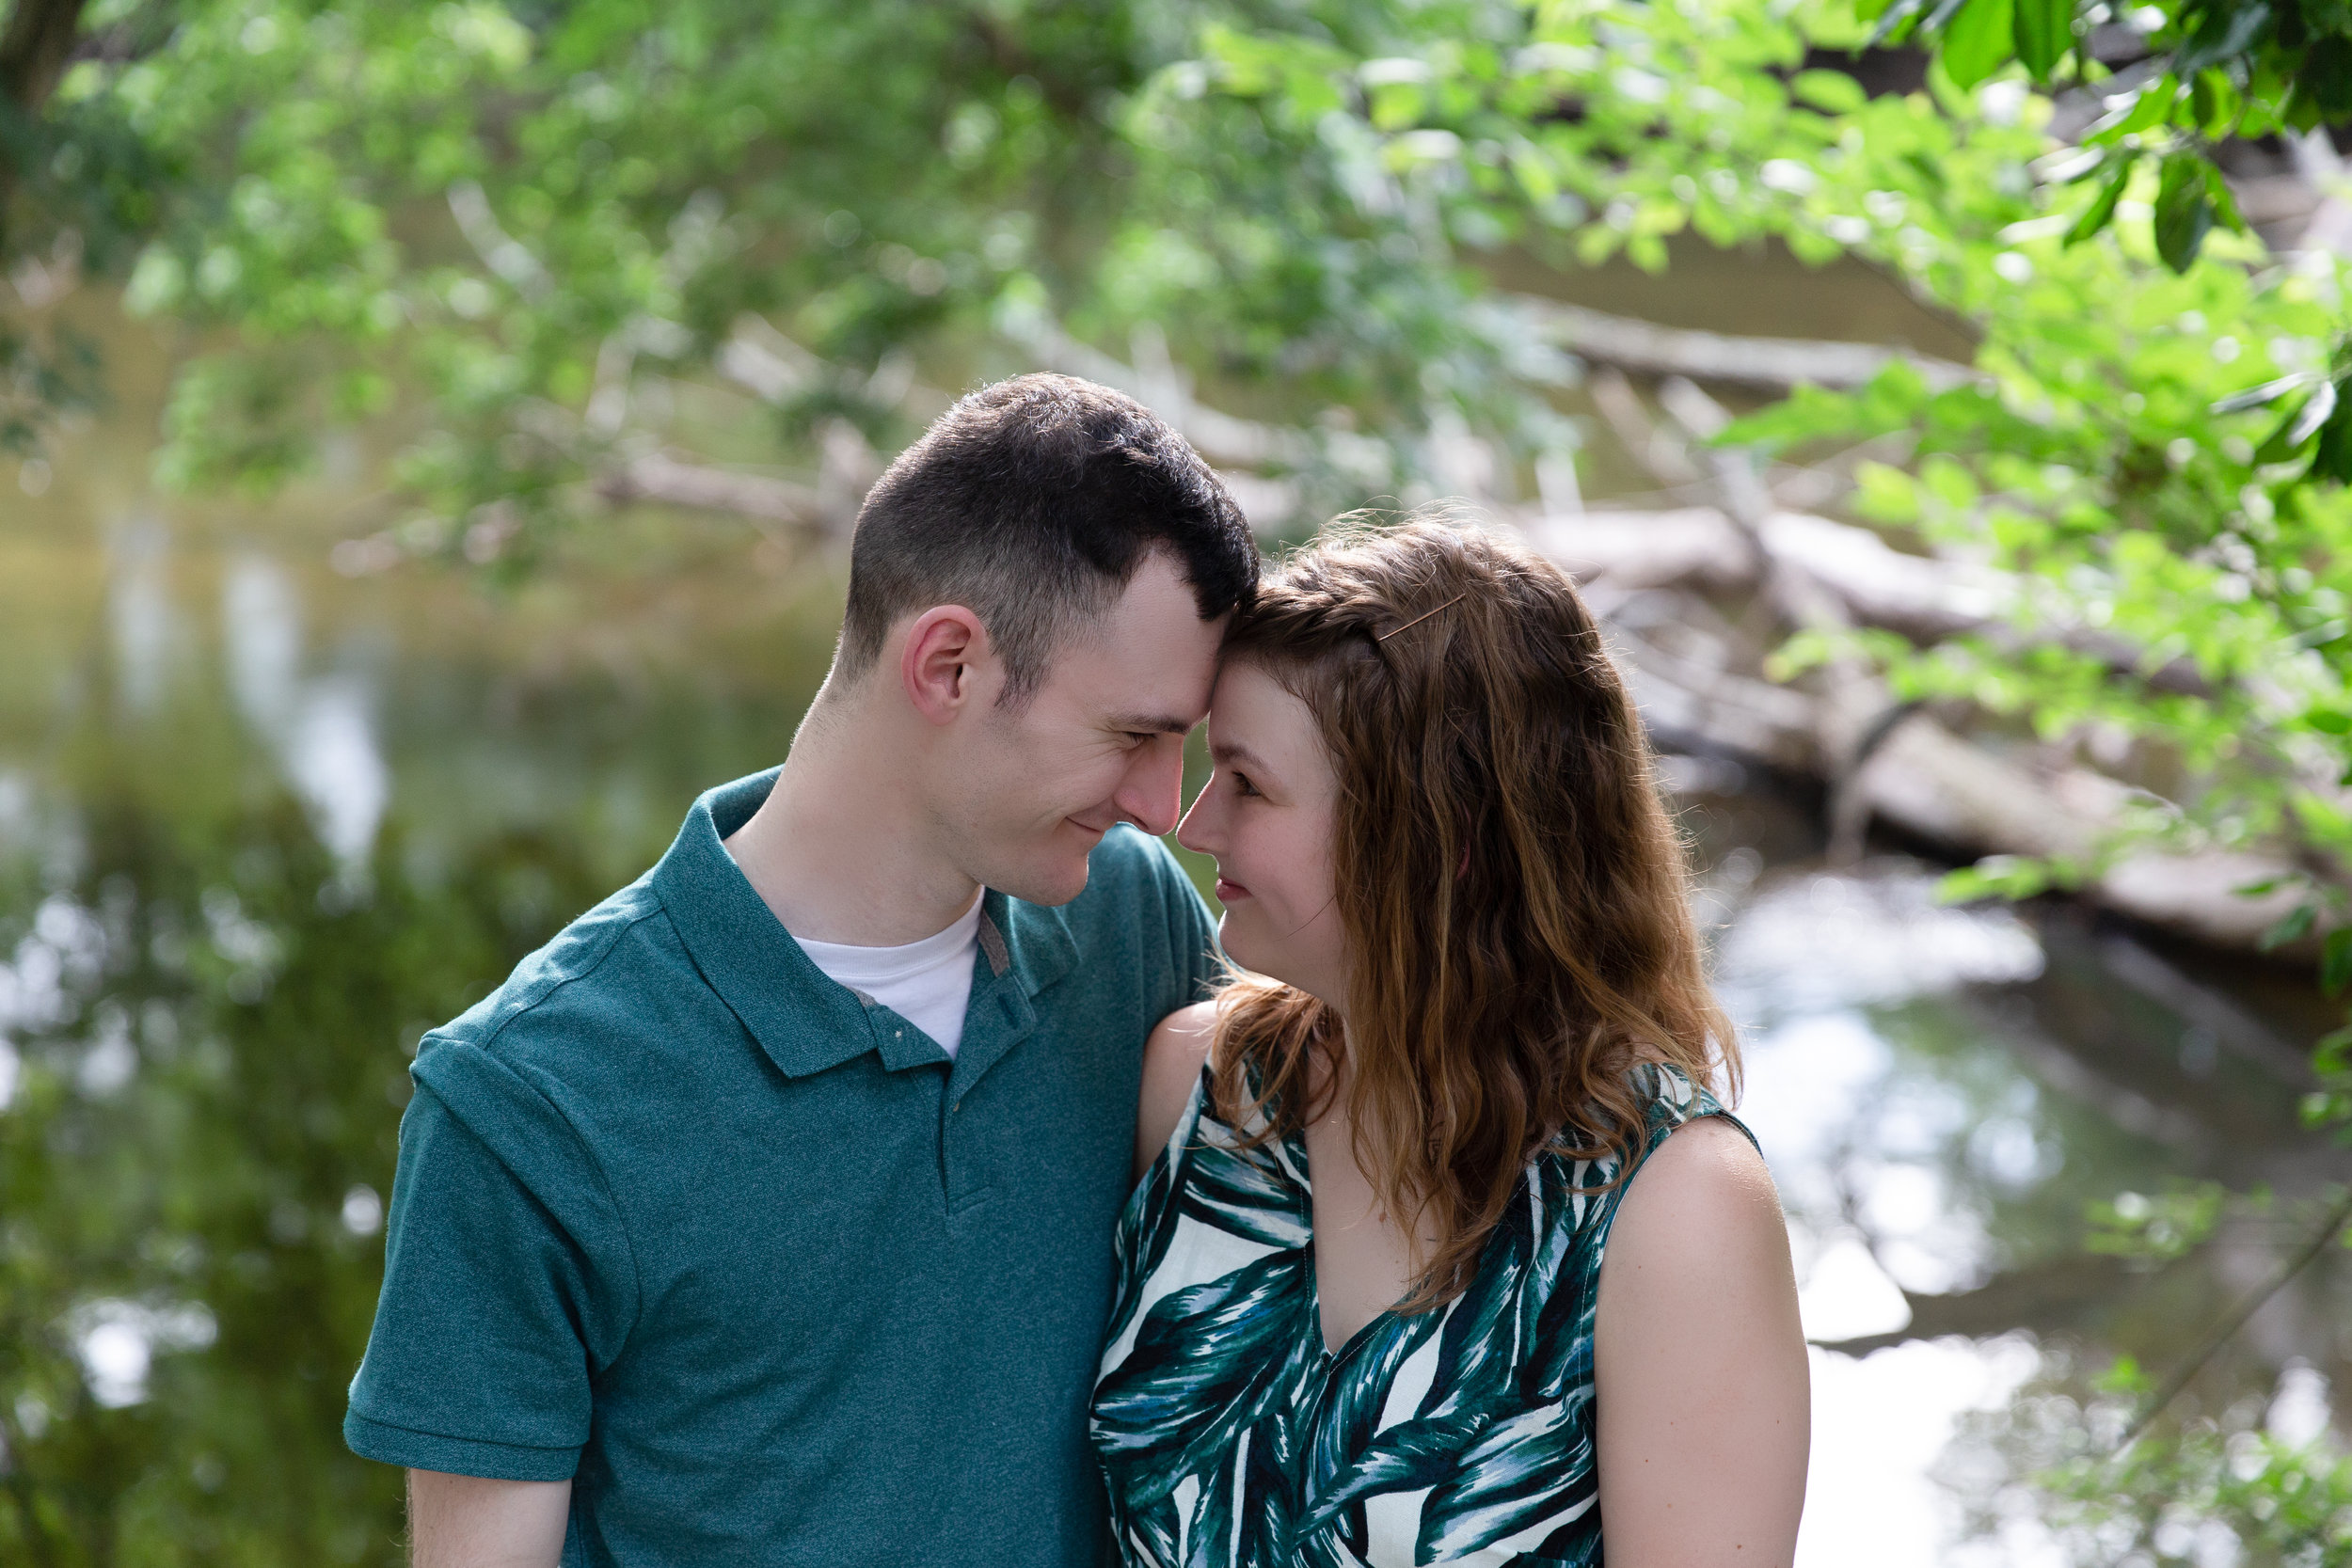 engaged couple with foreheads touching in park area